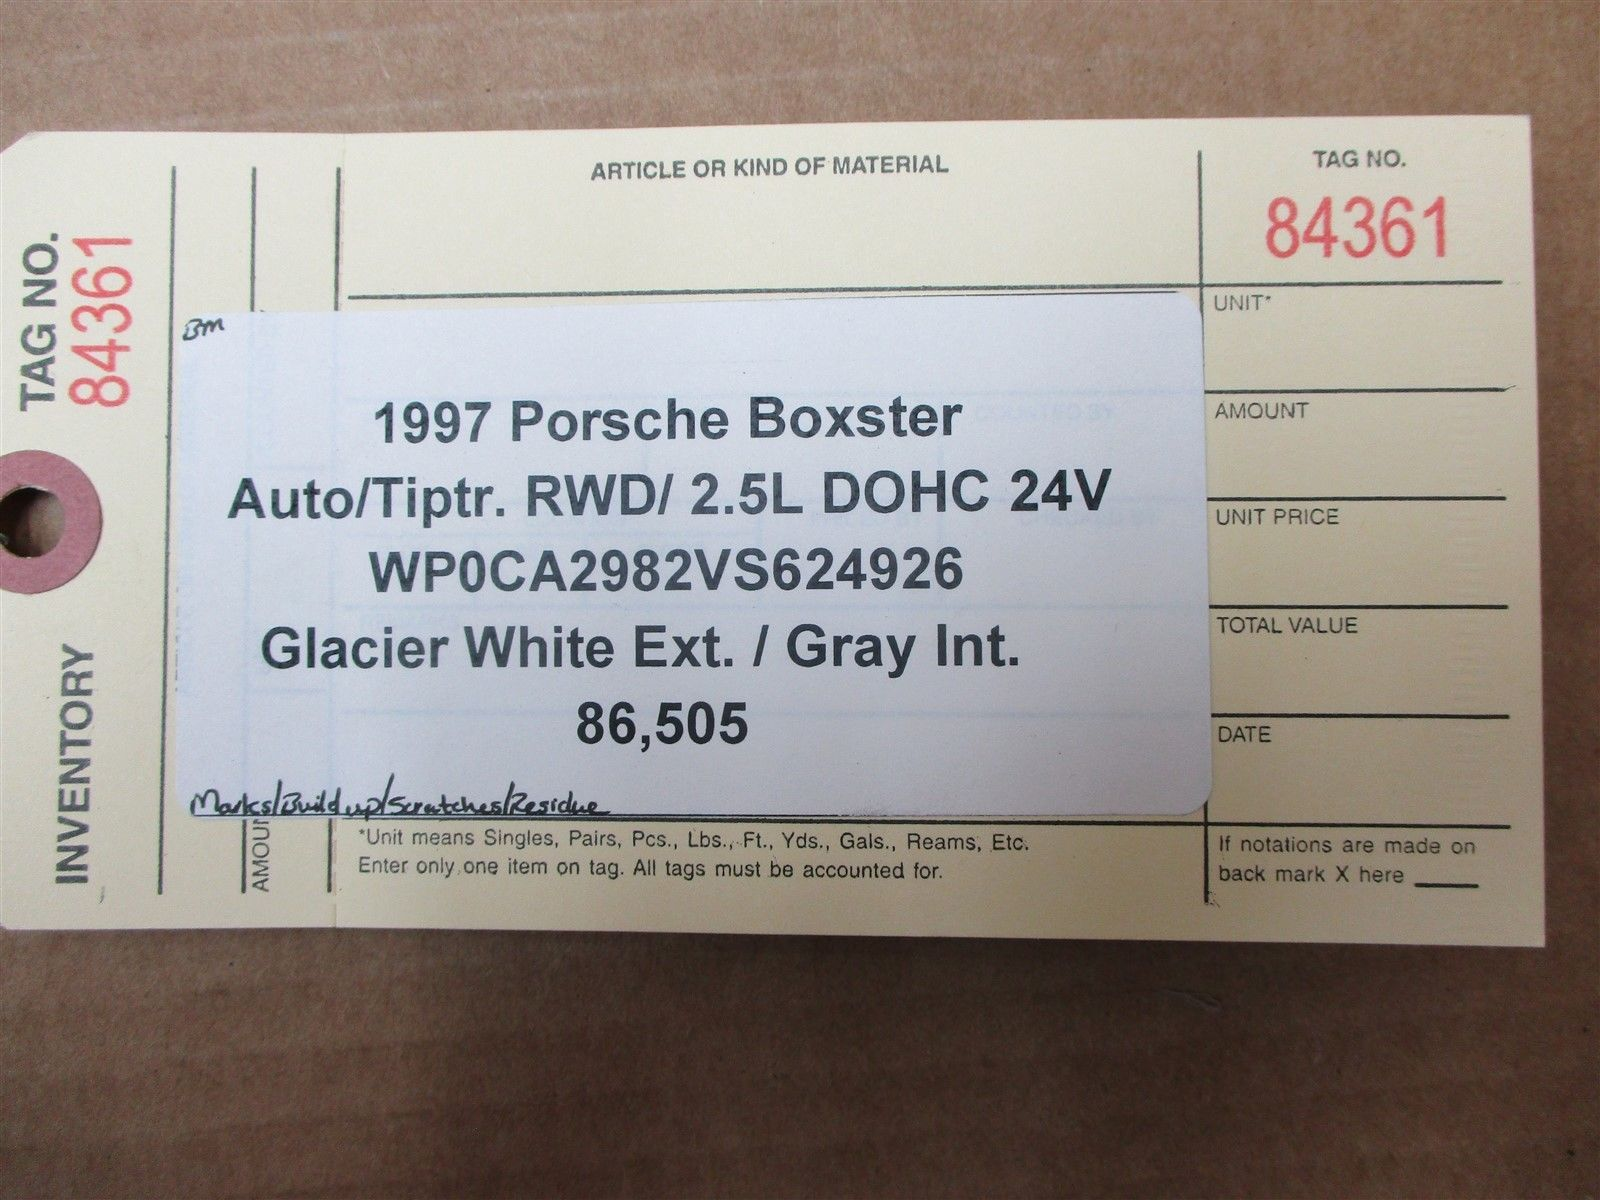 97 Boxster RWD Porsche 986 Black ROLL BAR TRIM + WINDOW 86,505